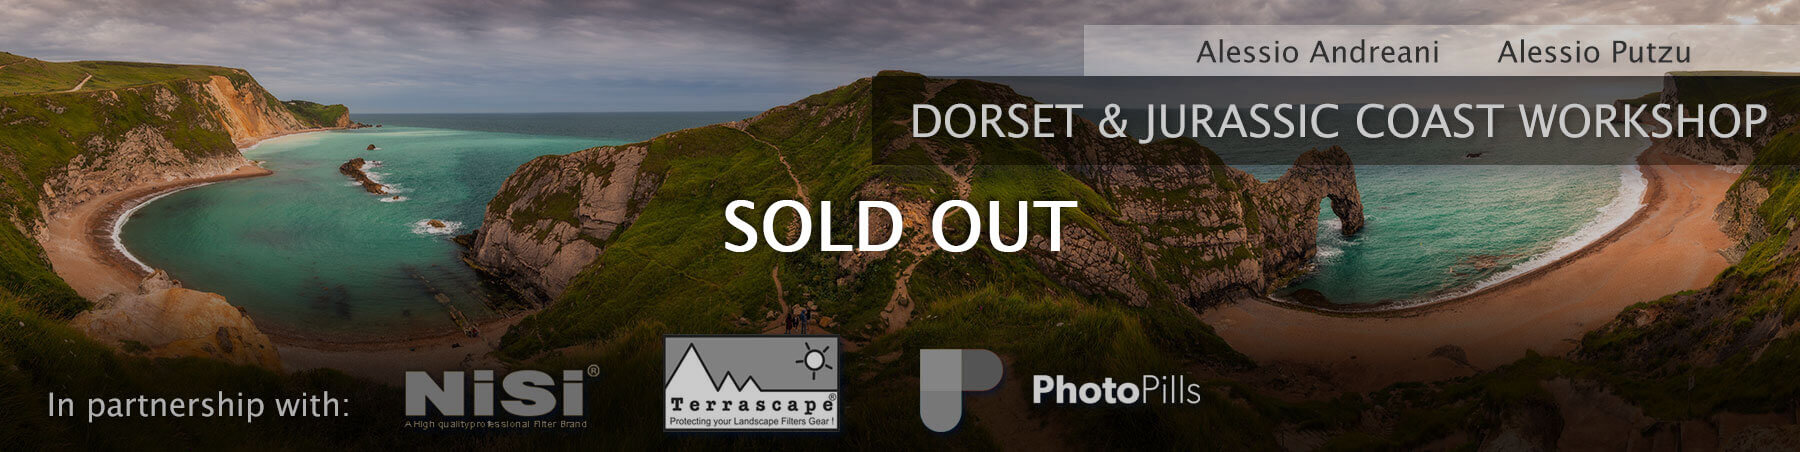 photography workshop dorset uk